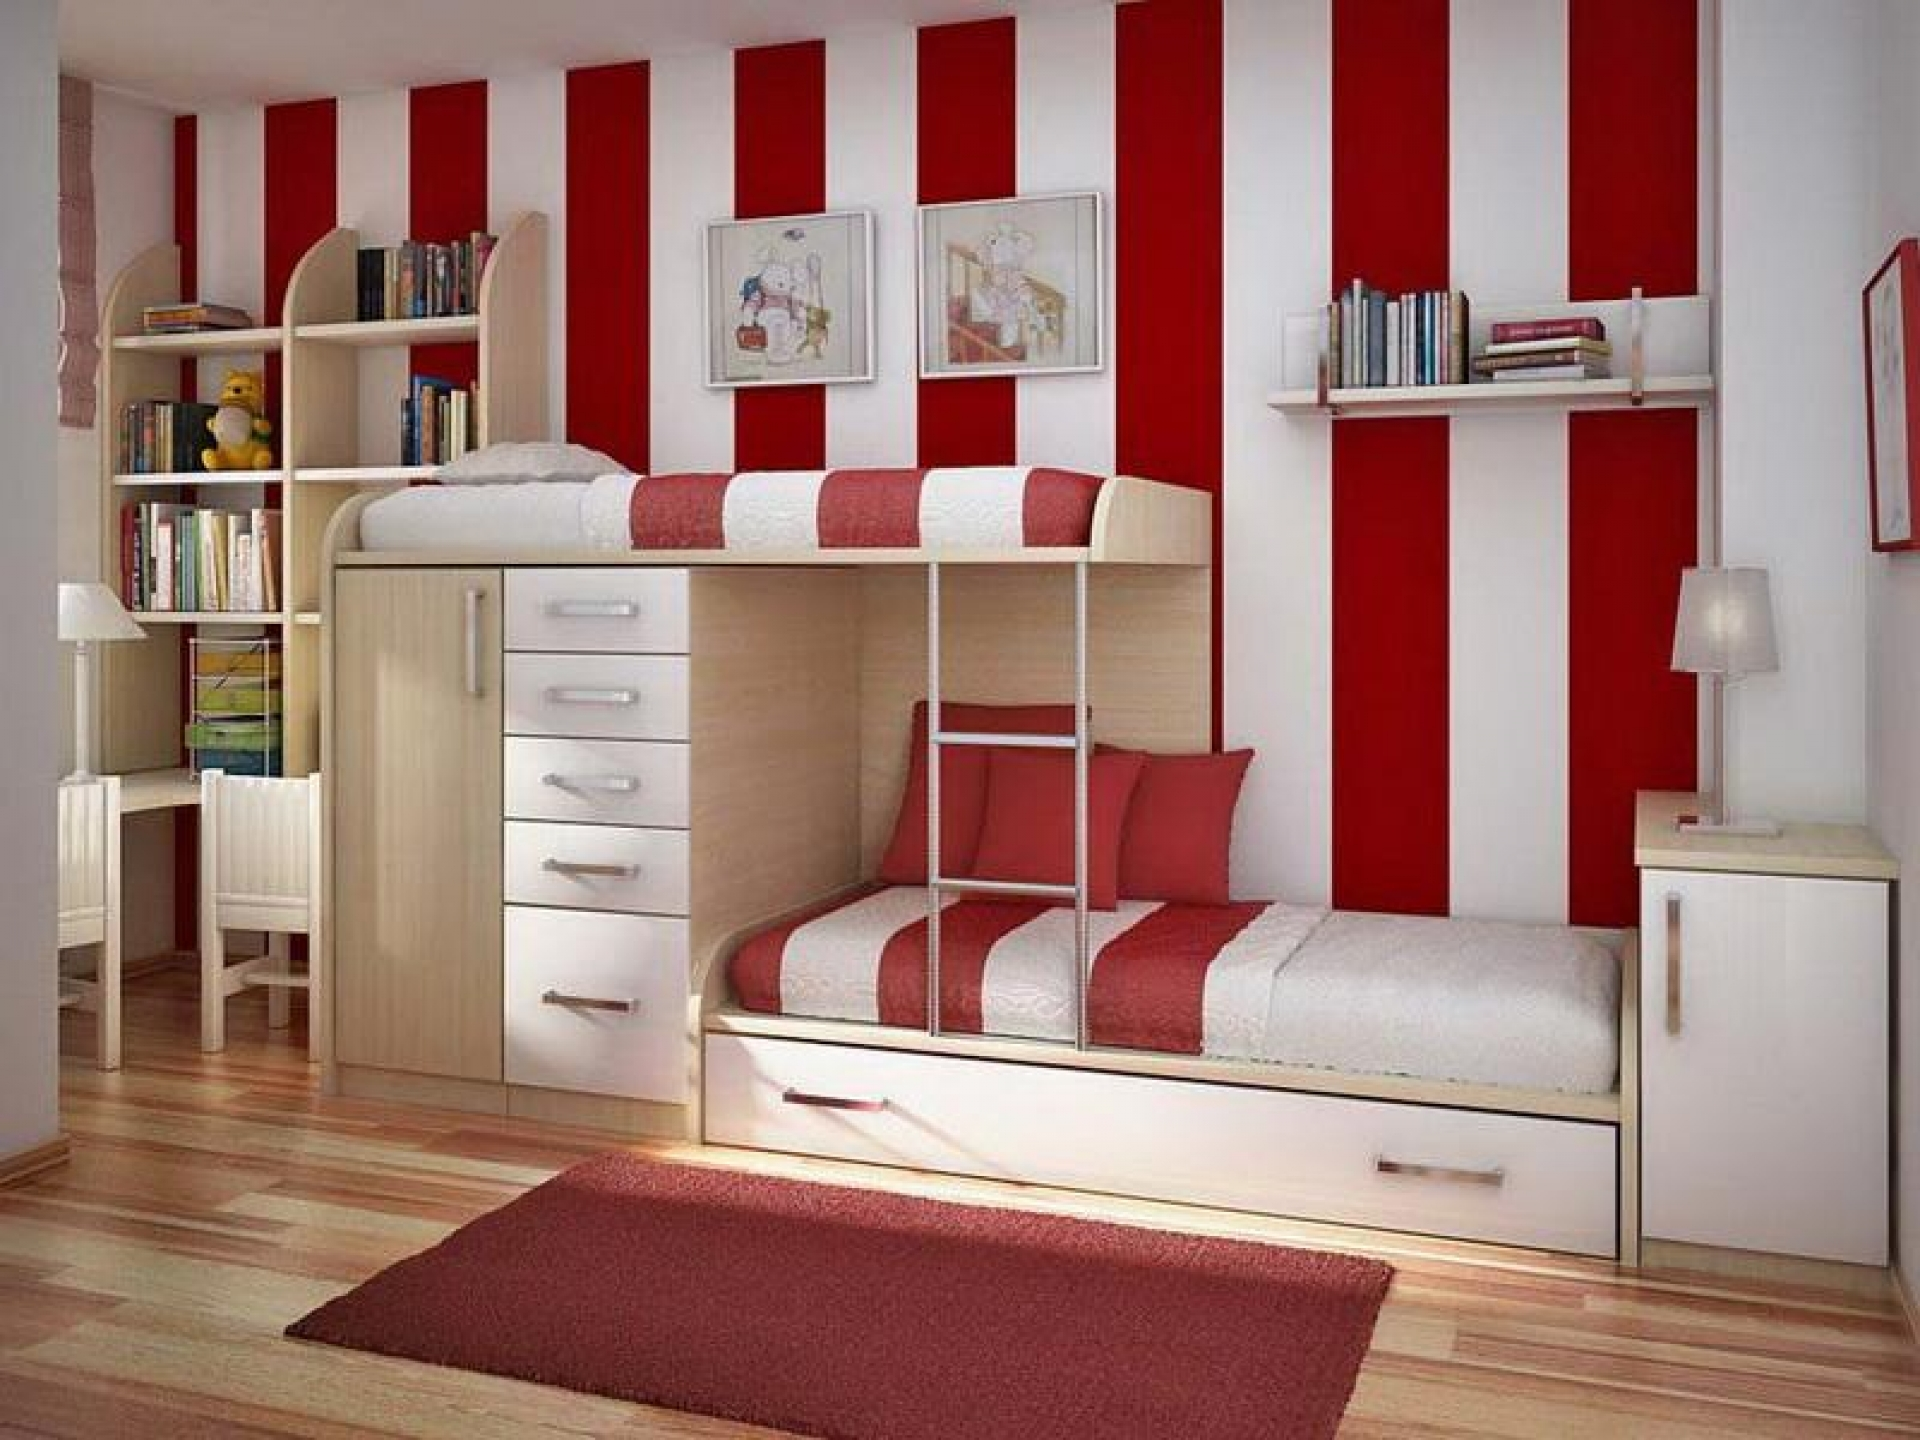 Princess Bedroom Accessories Uk 30 Creative Kids Bedroom Ideas That Youll Love The Rug Seller